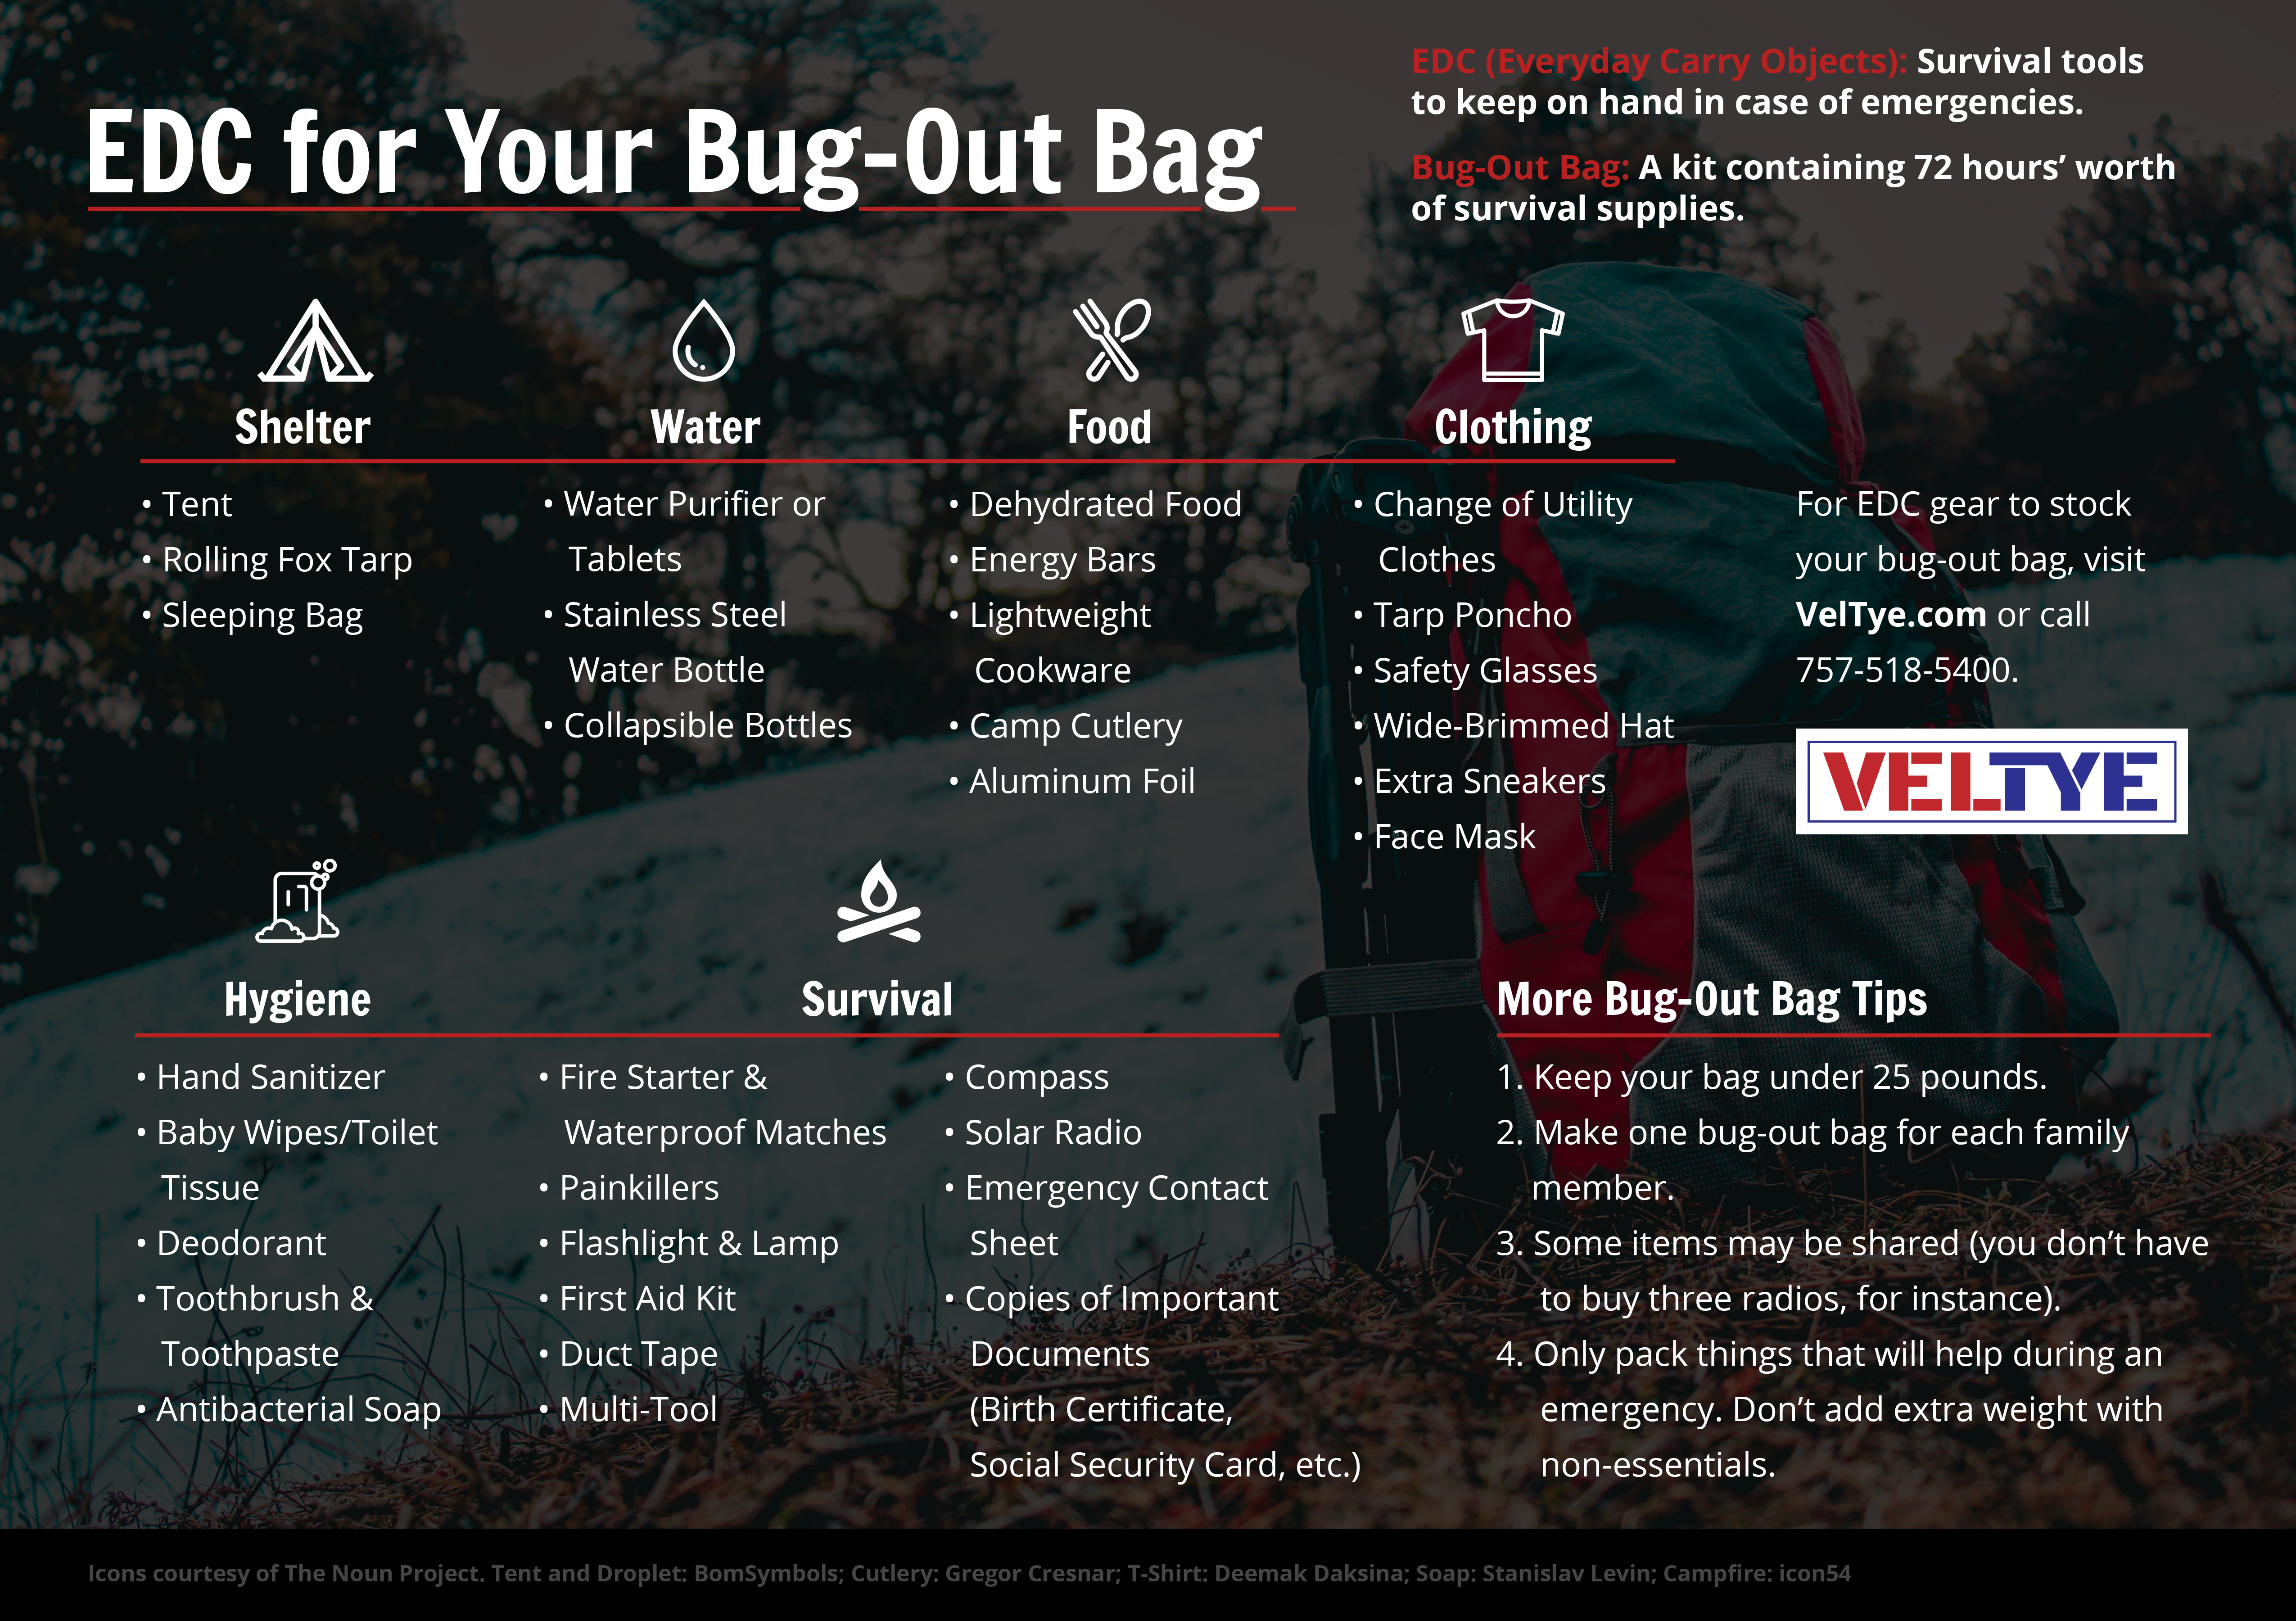 (Vel Tye) EDC Essentials for Your Bug-Out Bag Q3 2018 Infographic APPROVED